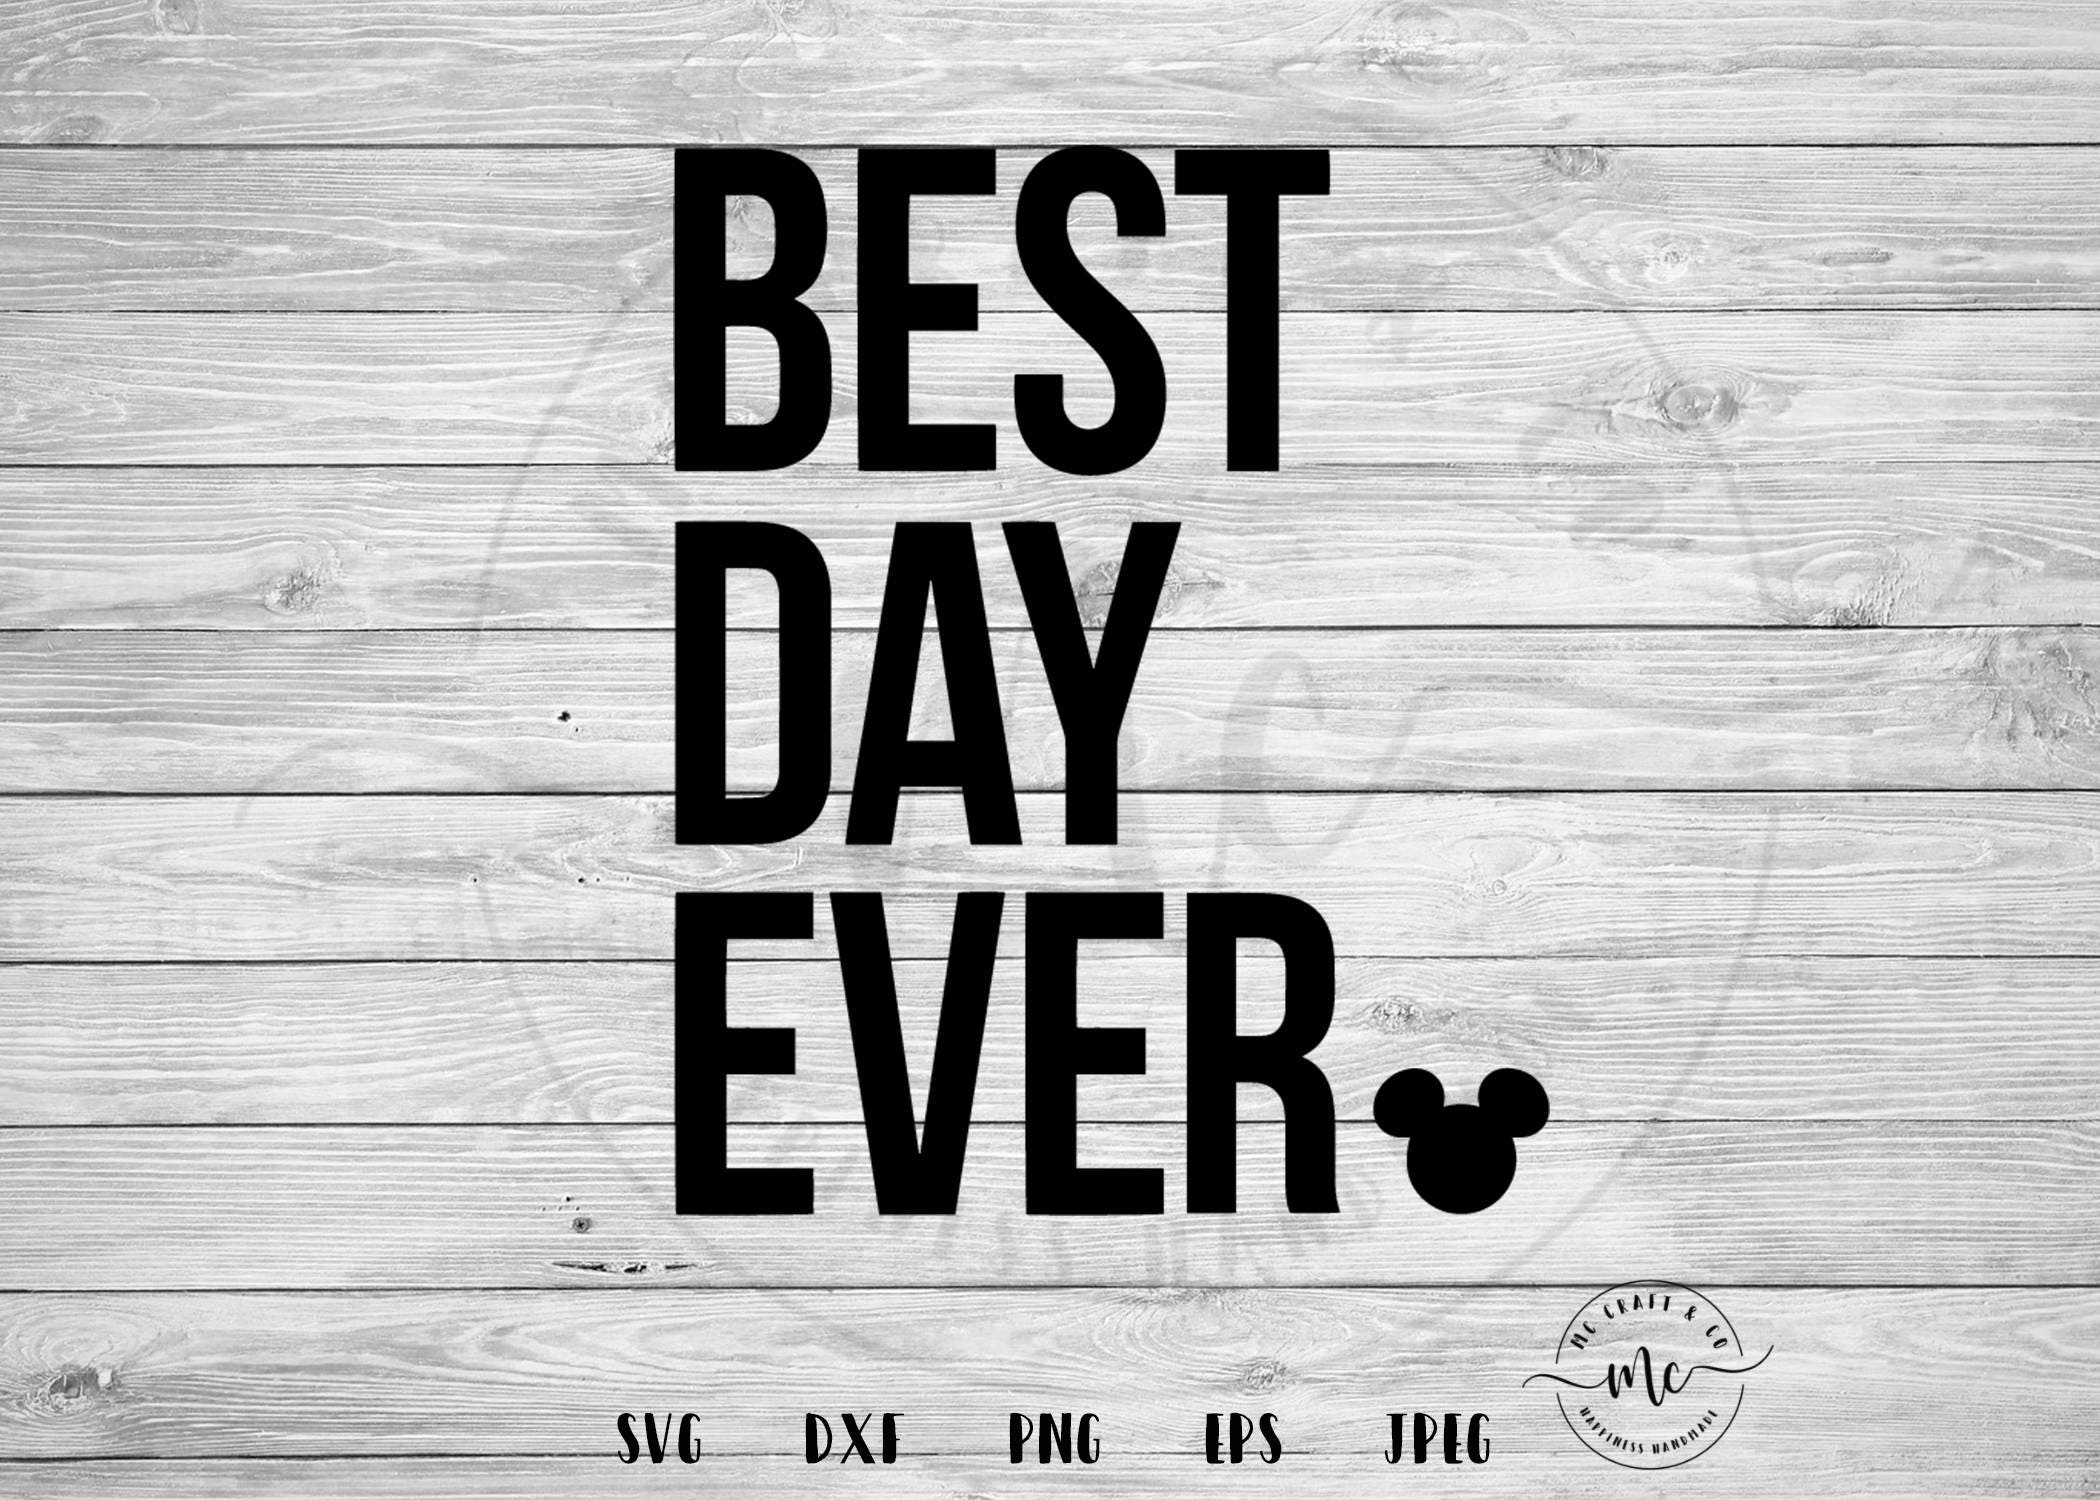 Best Day Ever Svg Disney Vacation Shirts Disney Shirts Etsy